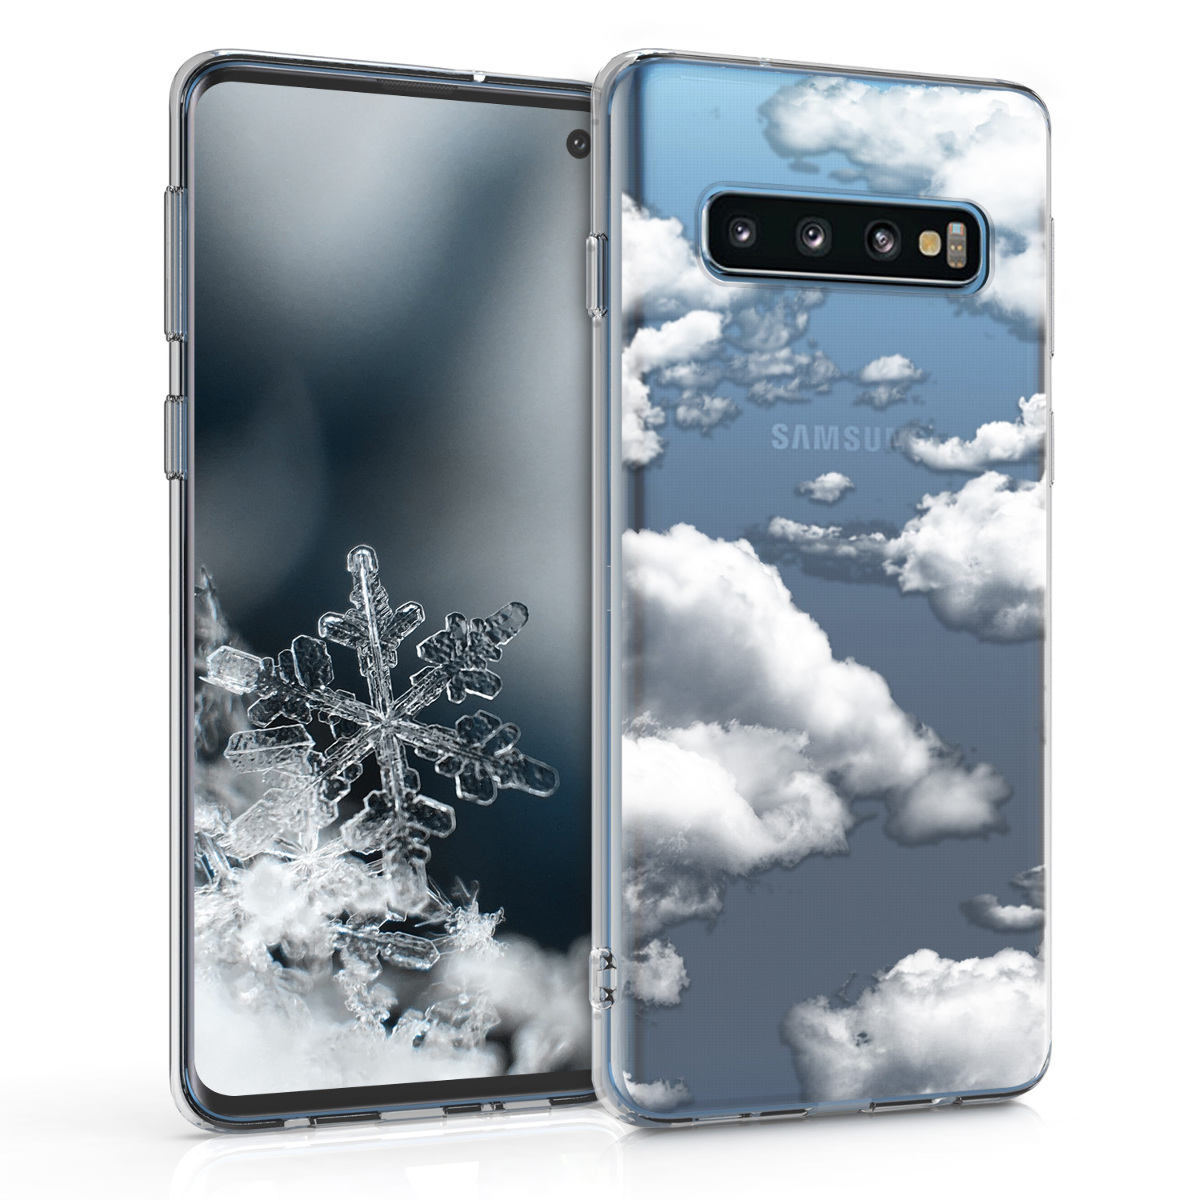 KW Θήκη Σιλικόνης Samsung Galaxy S10 - Bunch of Clouds - White / Transparent (47448.10)